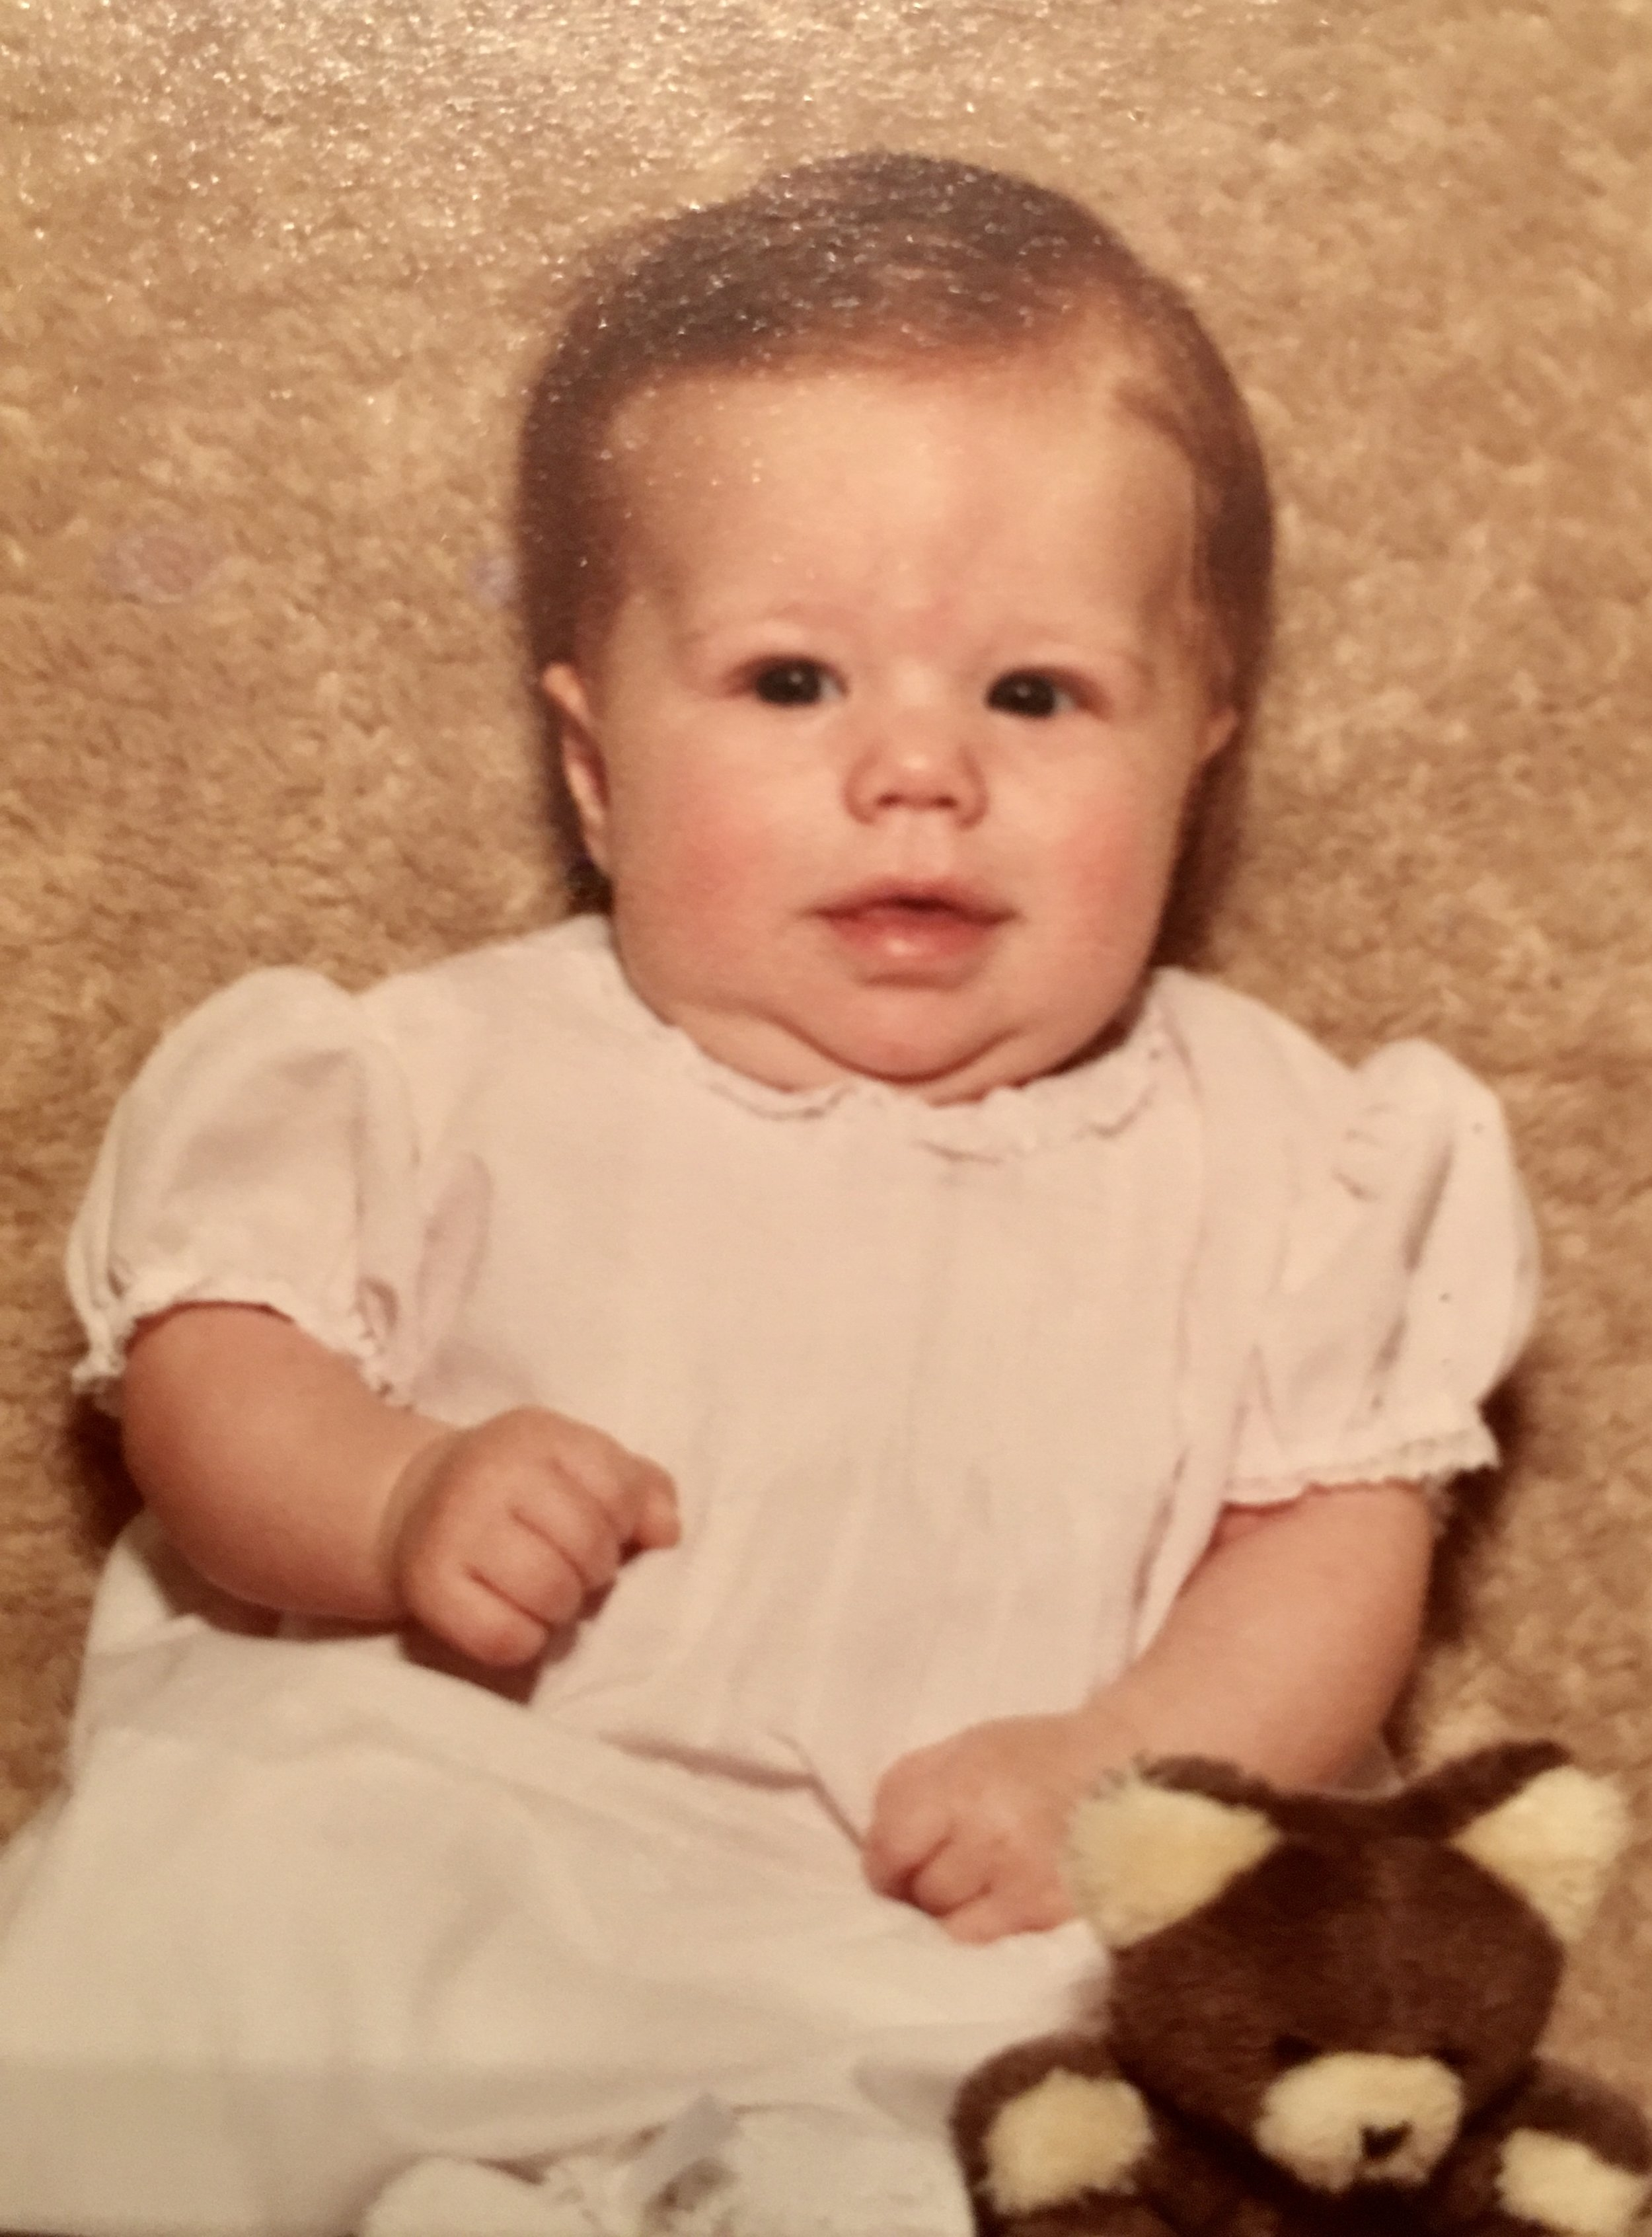 I'm probably 3 months or so here. As you can see, I was born with plenty of hair.